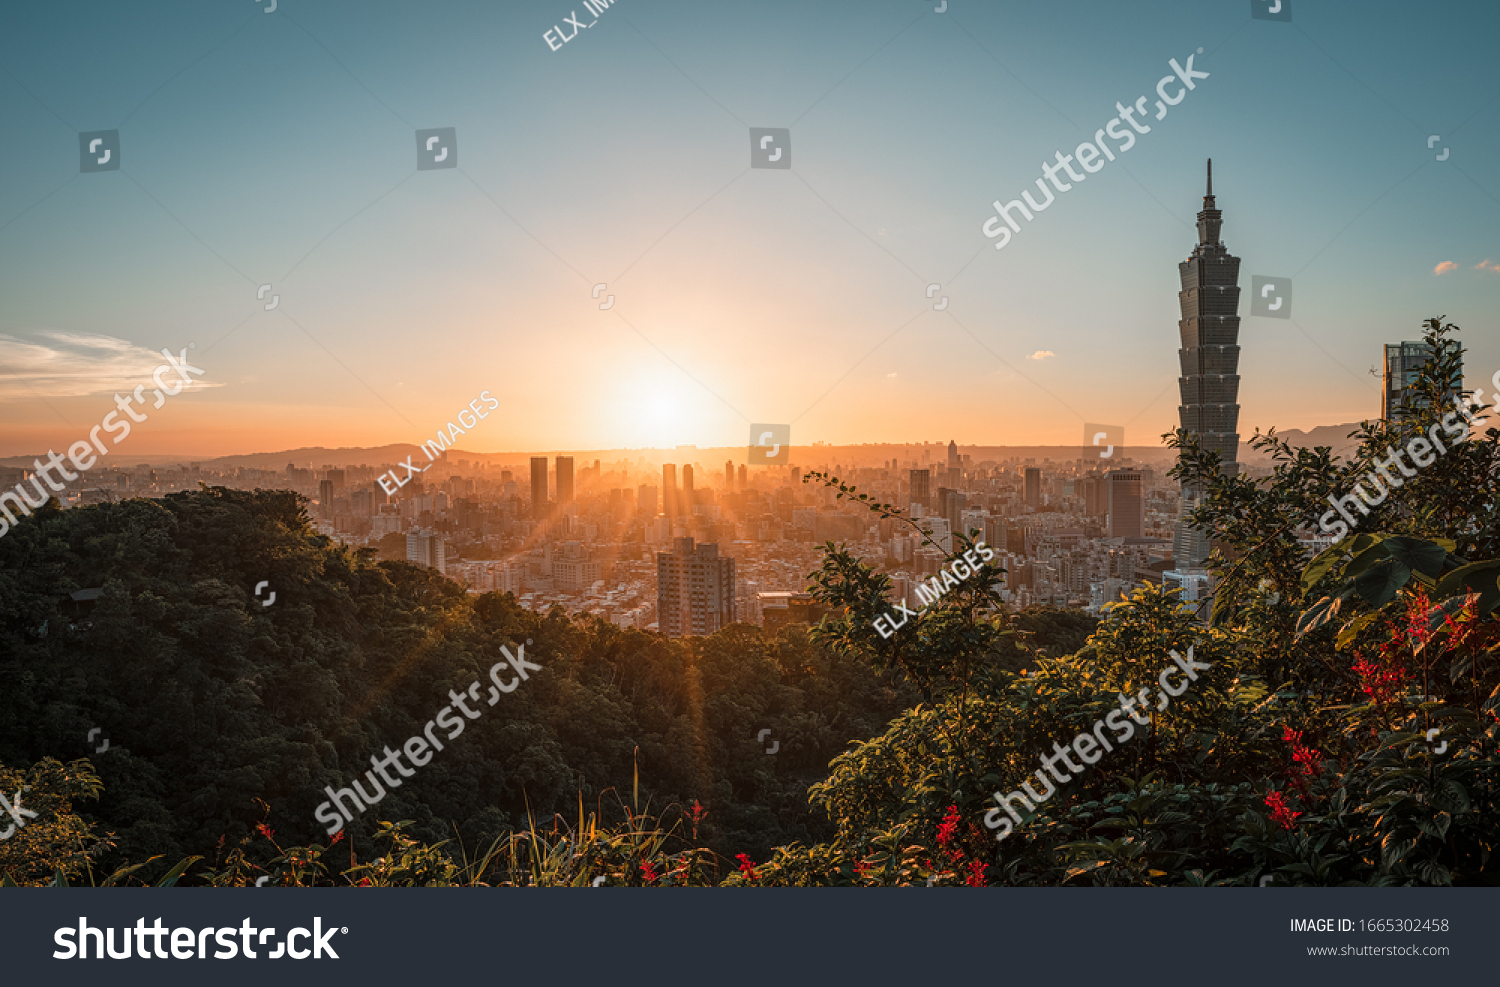 Stunning sunset view of Taipei with Taipei 101 tower, north of Taiwan #1665302458